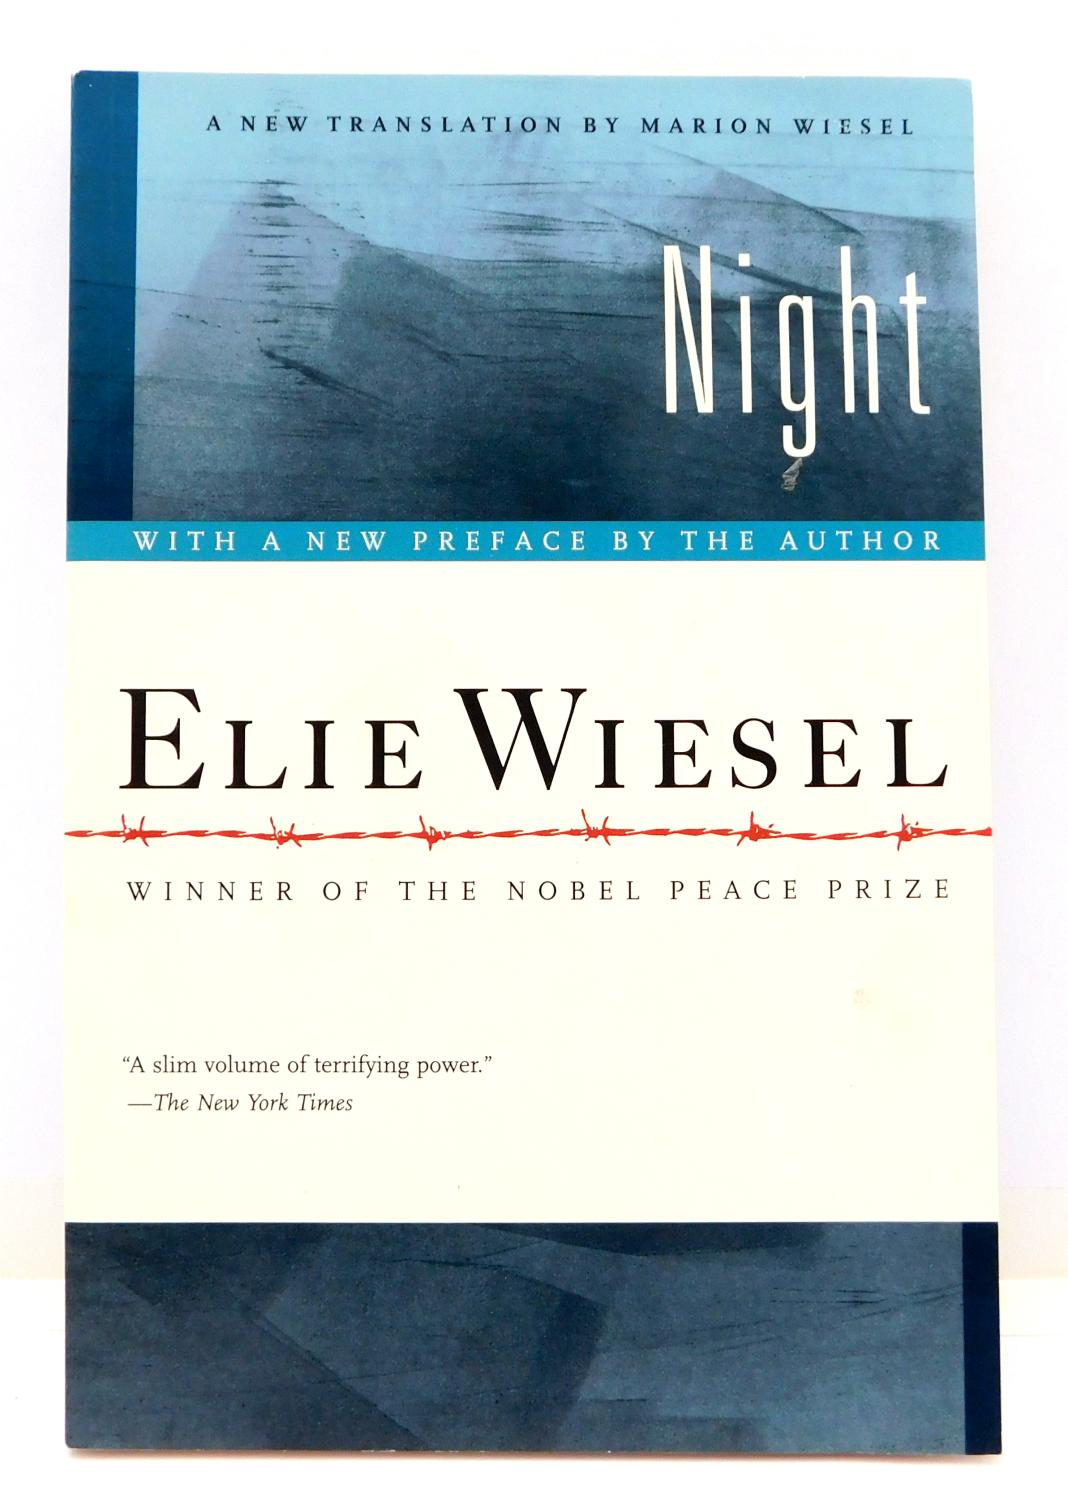 NIGHT by Wiesel, Elie: Hill and Wang/Farrar, Straus and Giroux  9780374500016 Paperback - The Parnassus BookShop